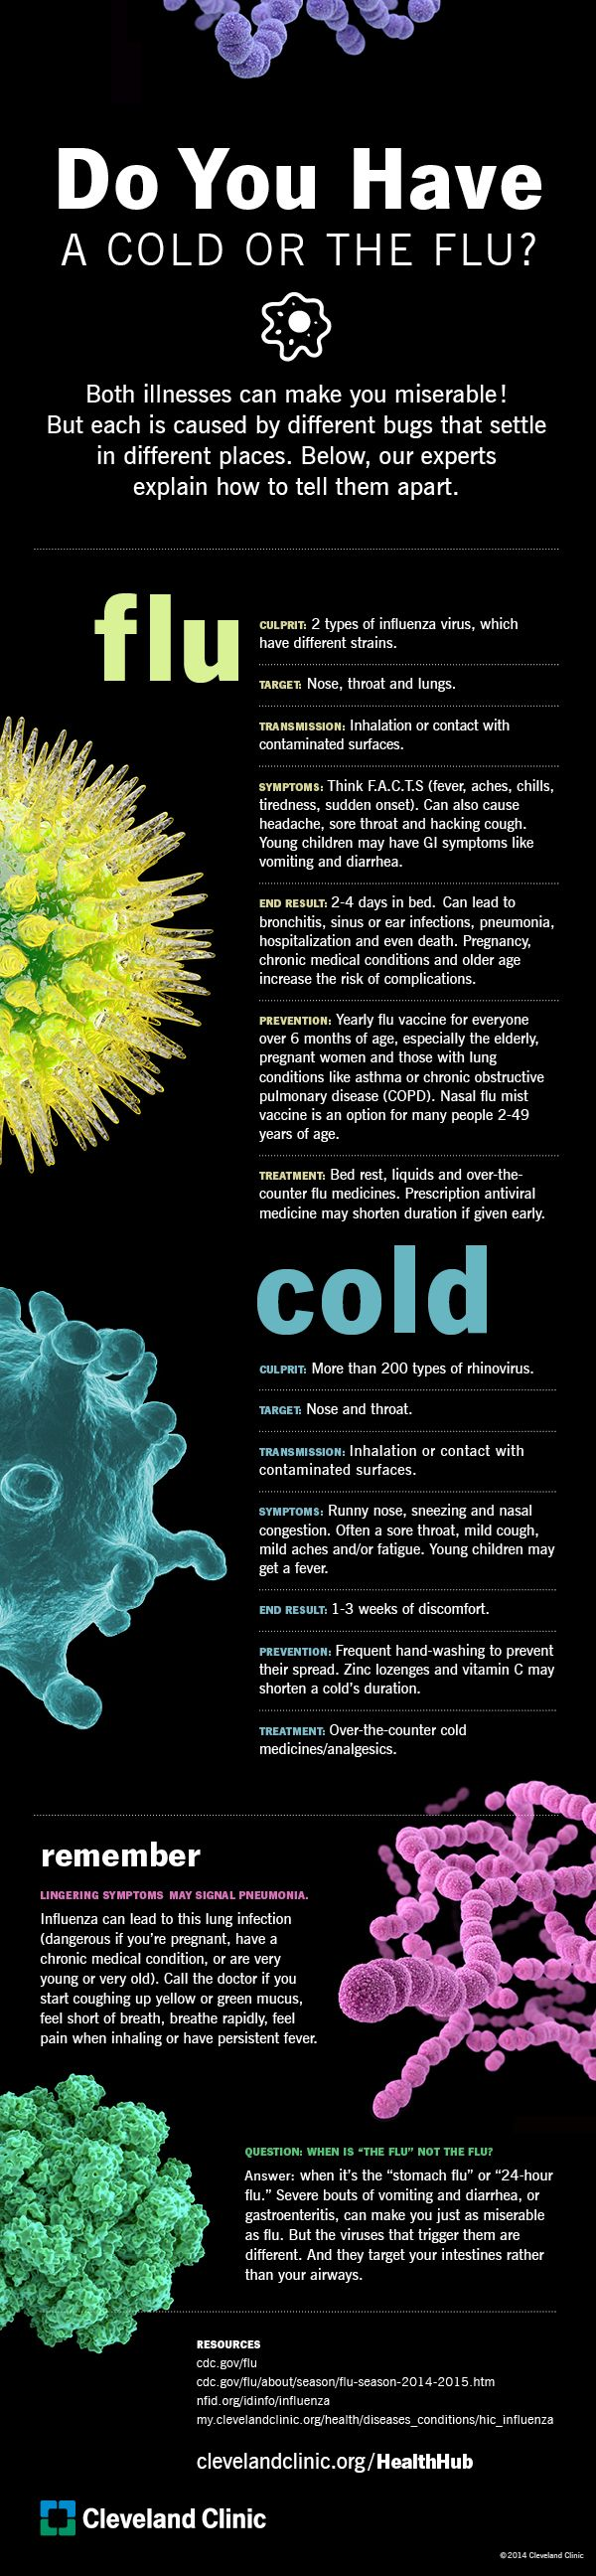 Do you have a #cold or the #flu? Use this guide to help you decide. #infographic